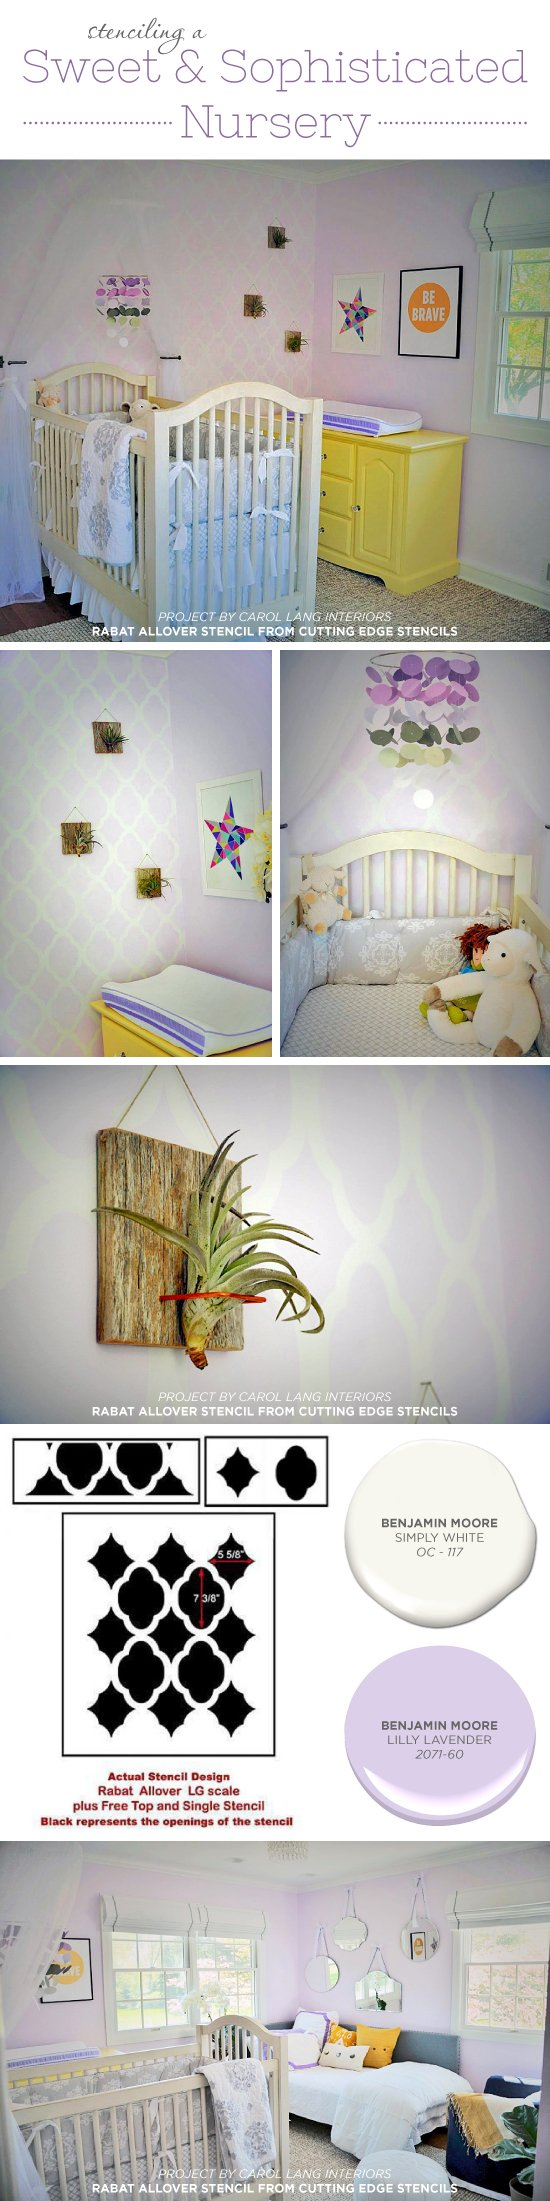 Stenciling a sweet and sophisticated nursery stencil stories cutting edge stencils shares a diy stenciled nursery accent wall using the rabat allover a amipublicfo Image collections